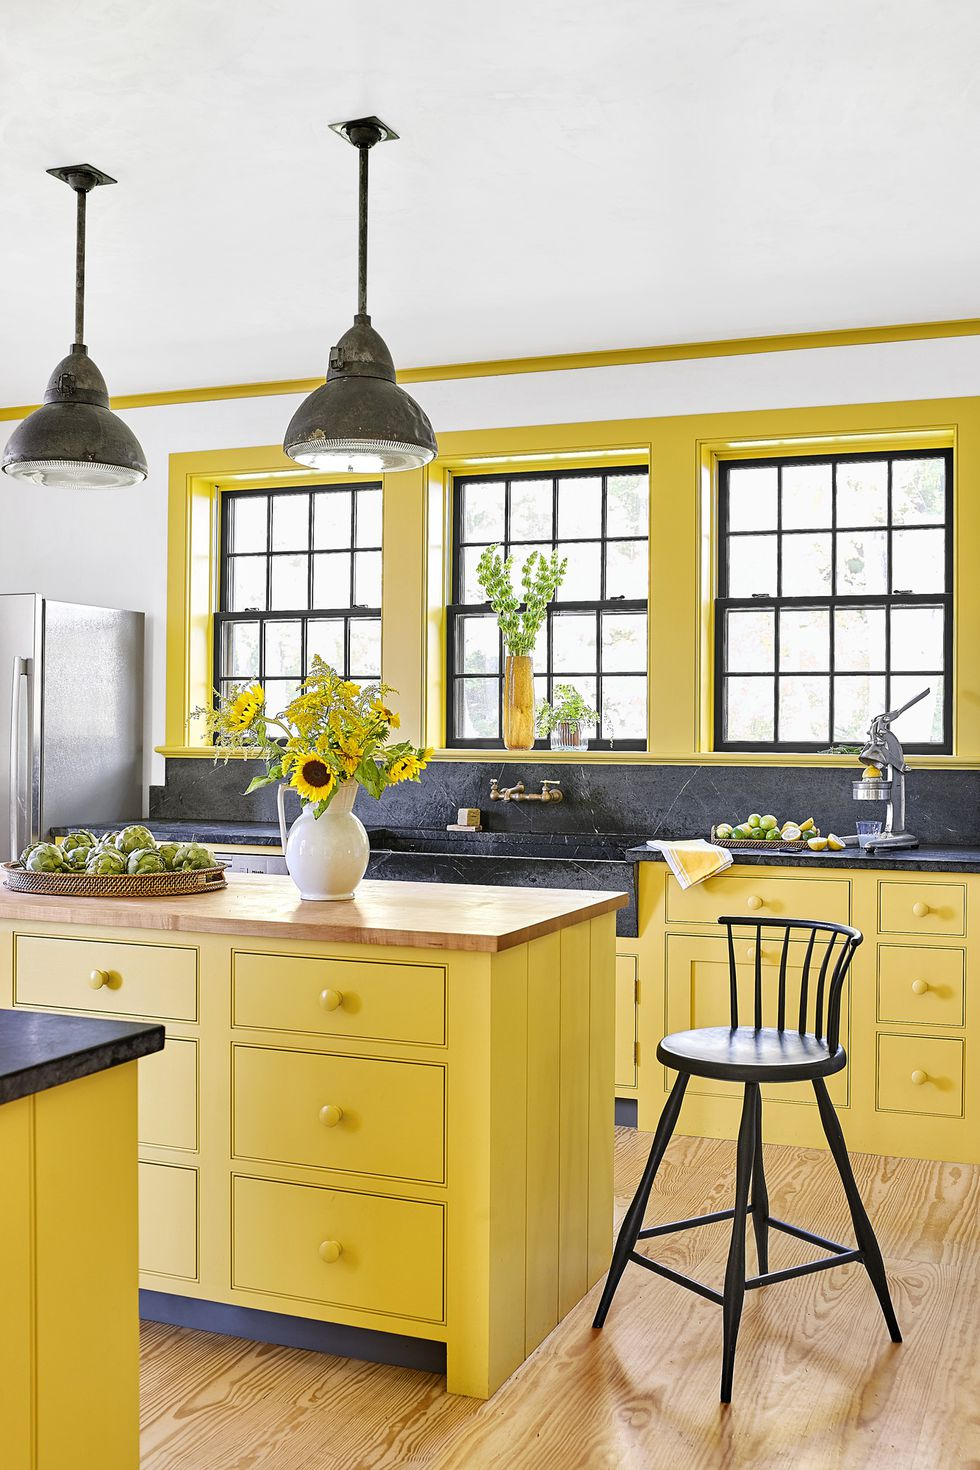 Lemon colored cabinetry in this kitchen by   Rafe Churchill   via   Country Living  ; Paint by Farrow and Ball - color Babouche